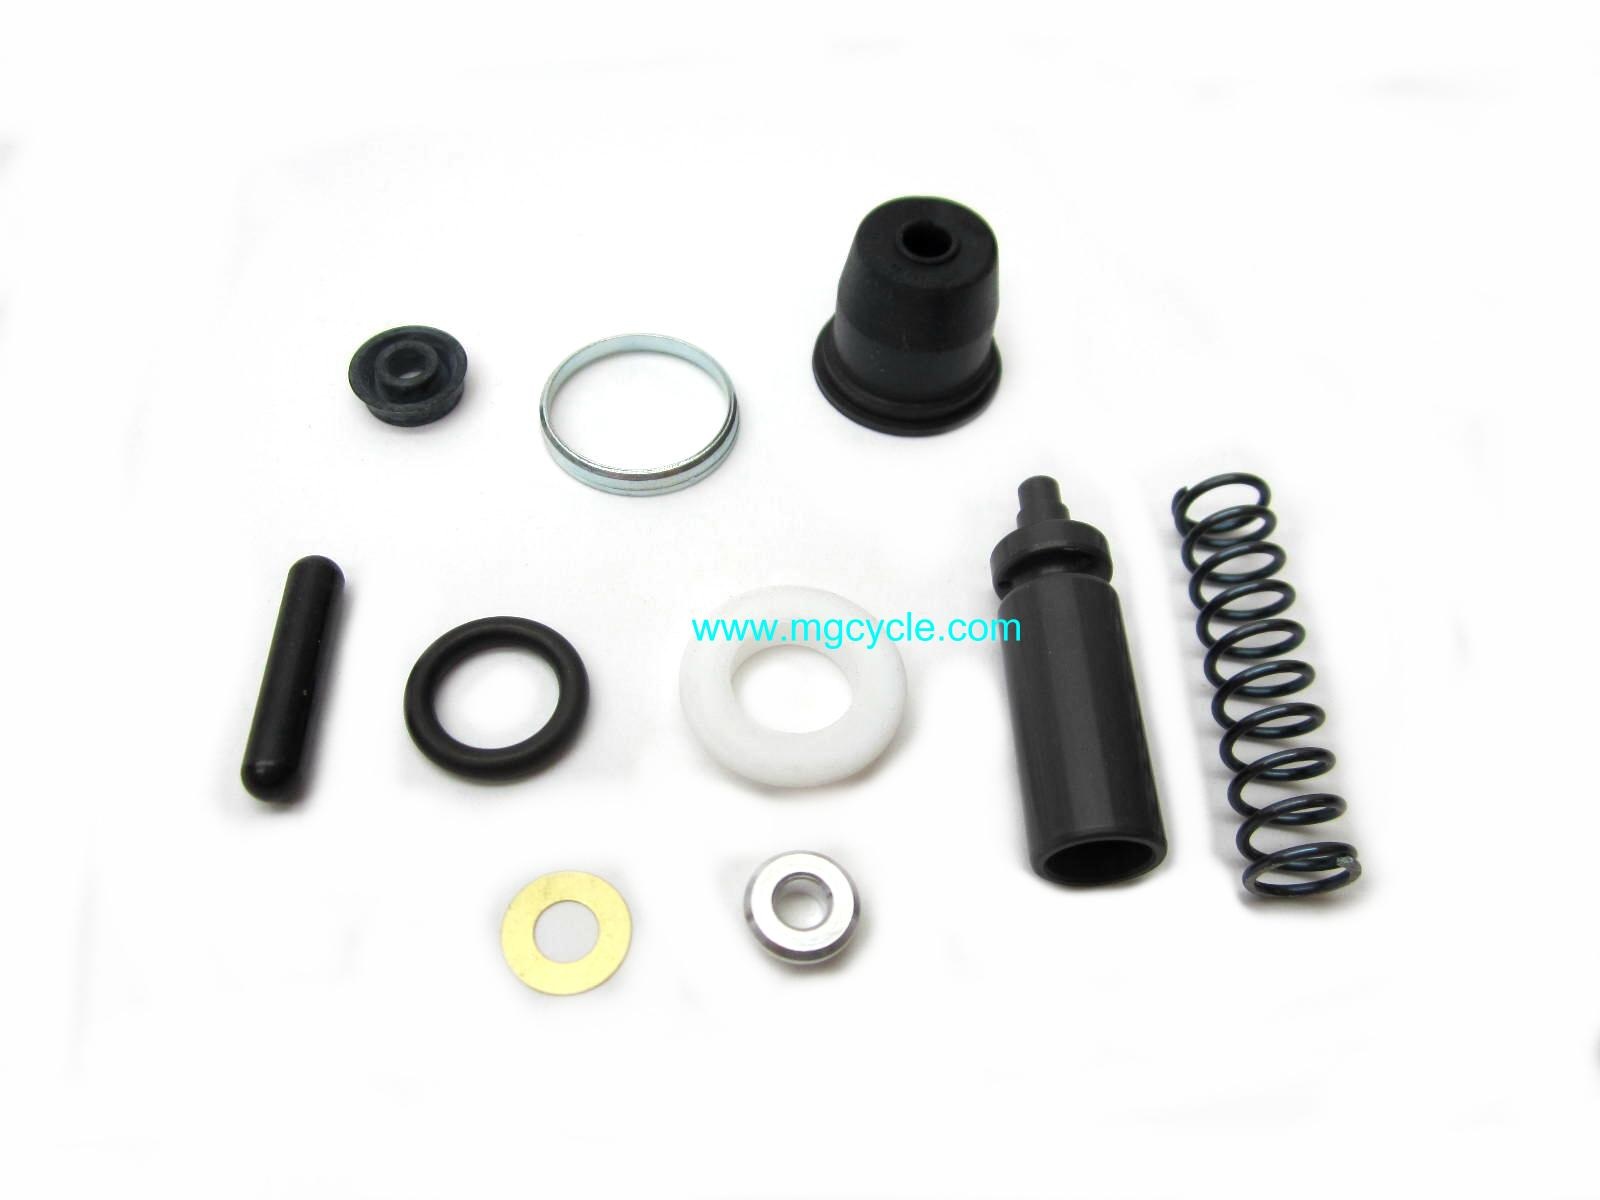 11mm Brembo front master cylinder repair kit Cal 1100 1994-1997